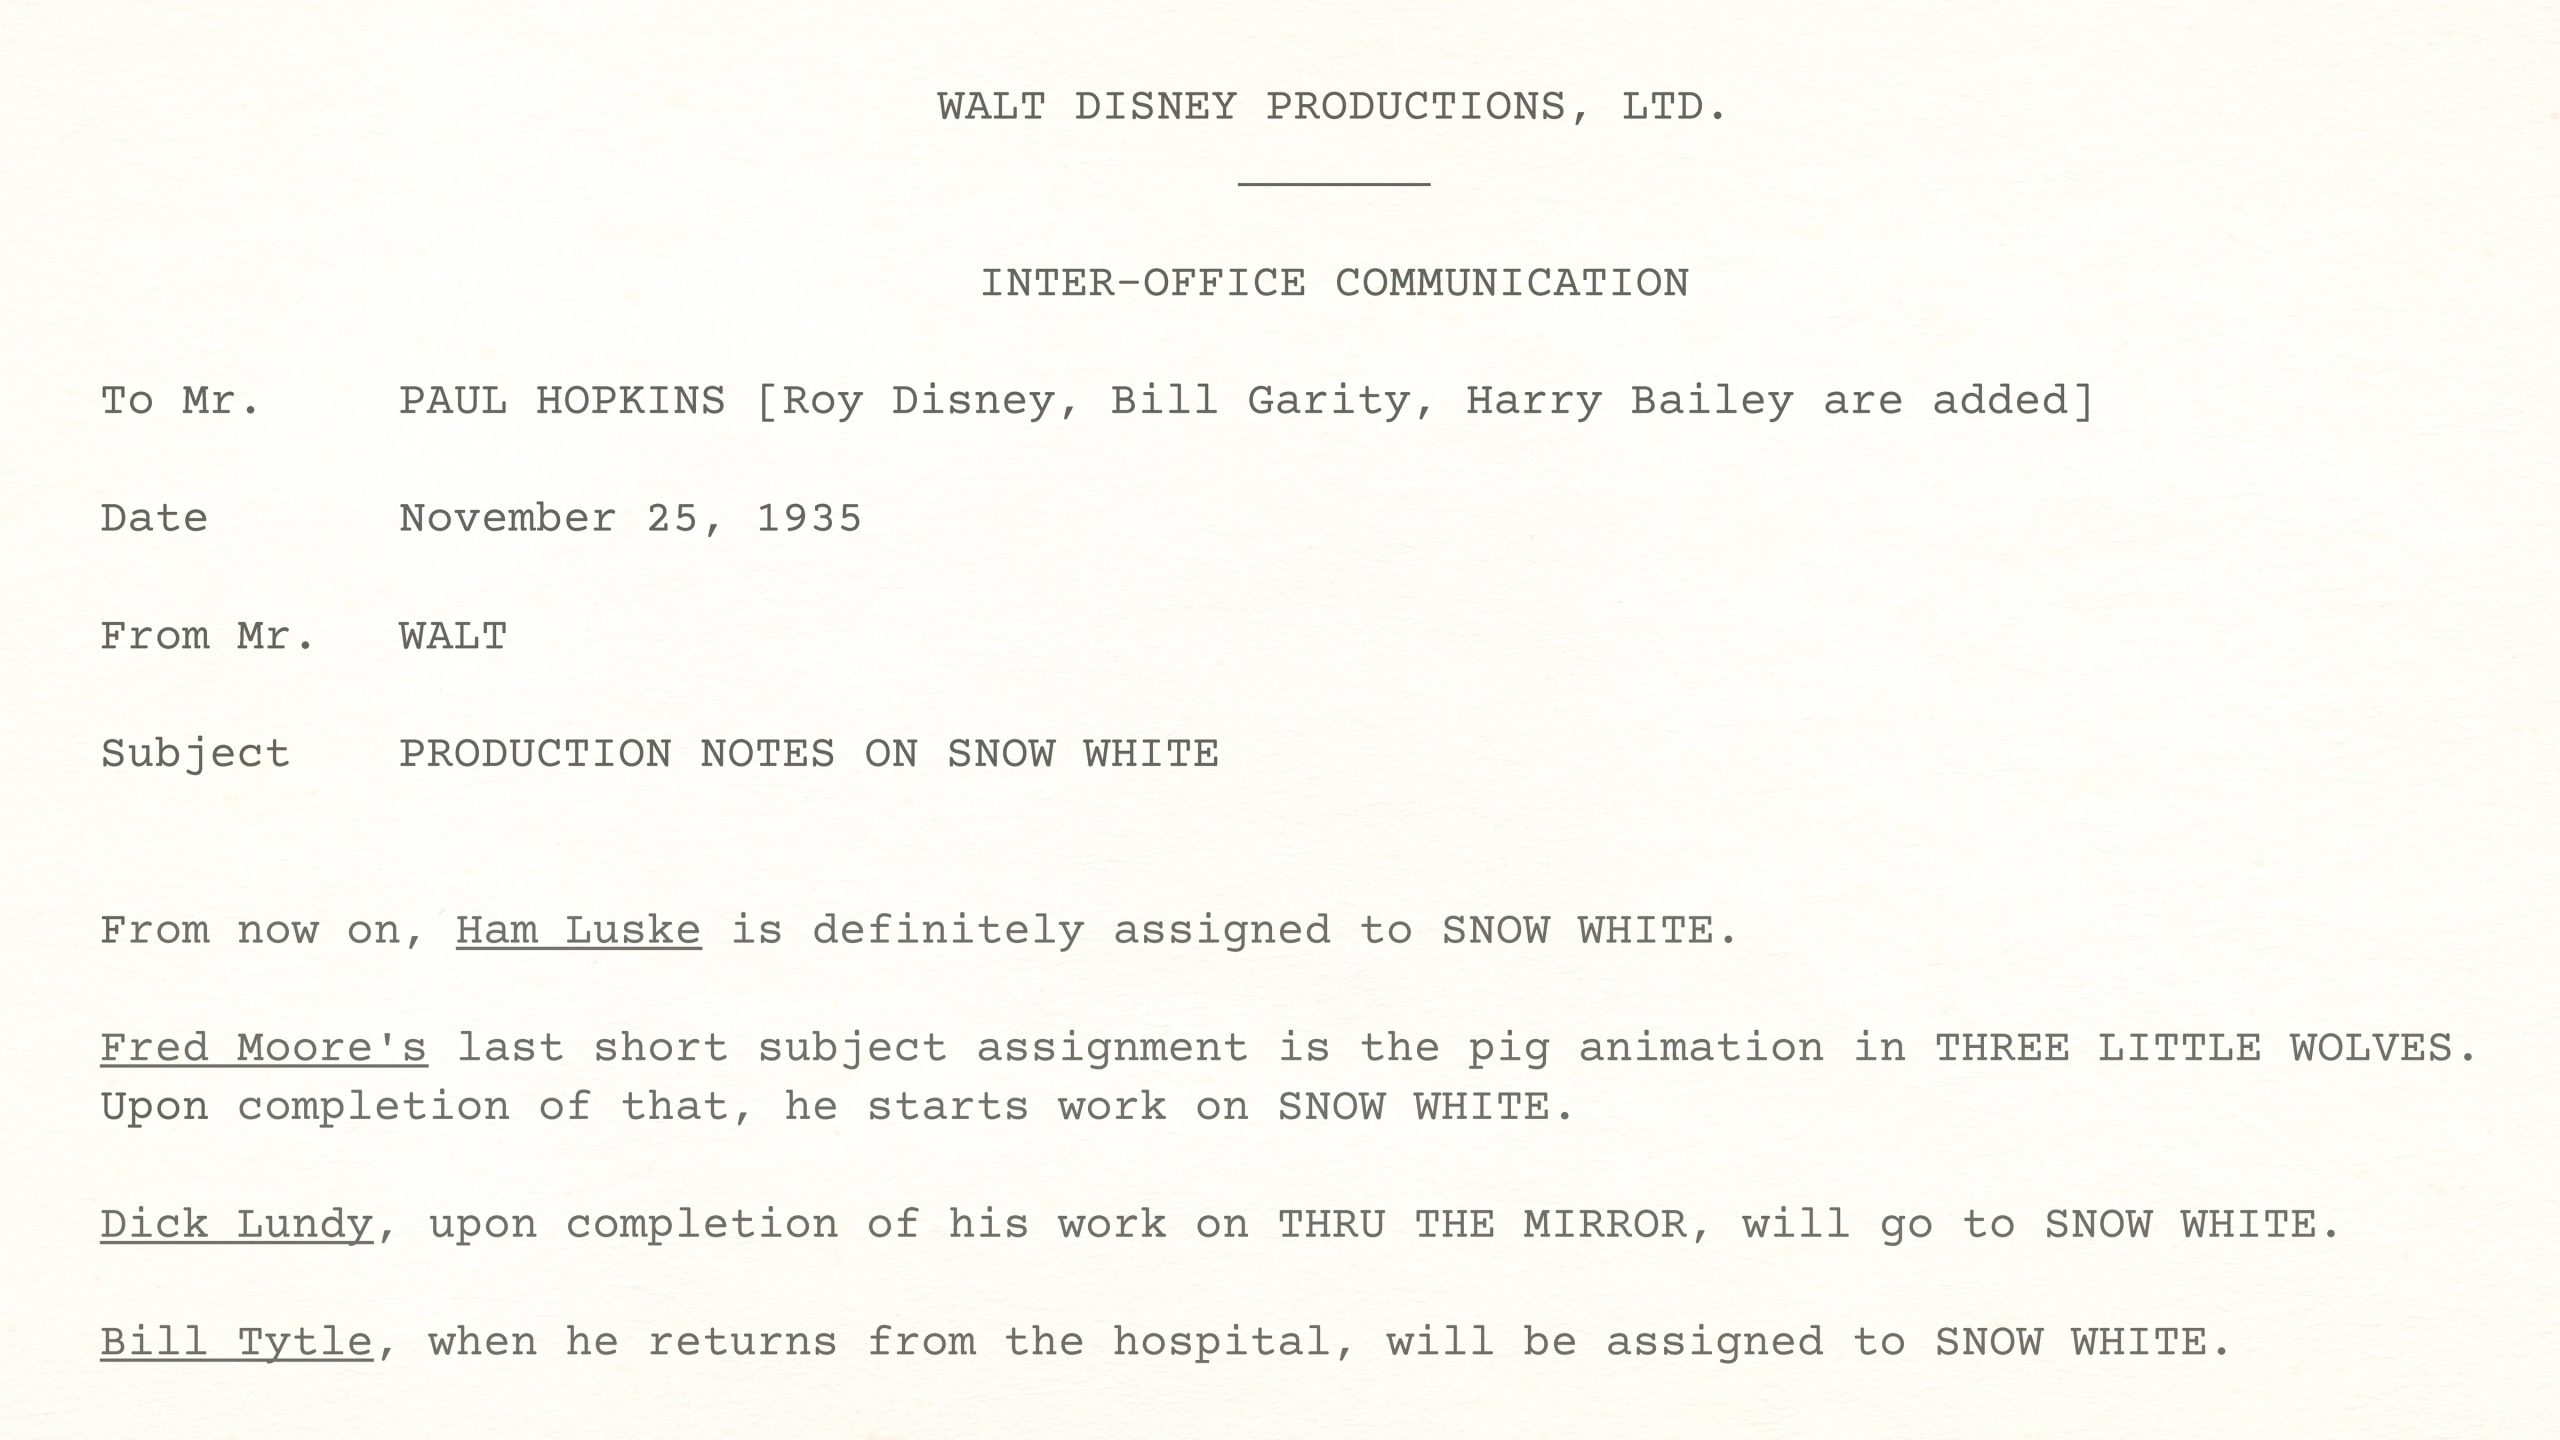 WALT DISNEY PRODUCTIONS, LTD. — INTER-OFFICE COMMUNICATION, November 25, 1935